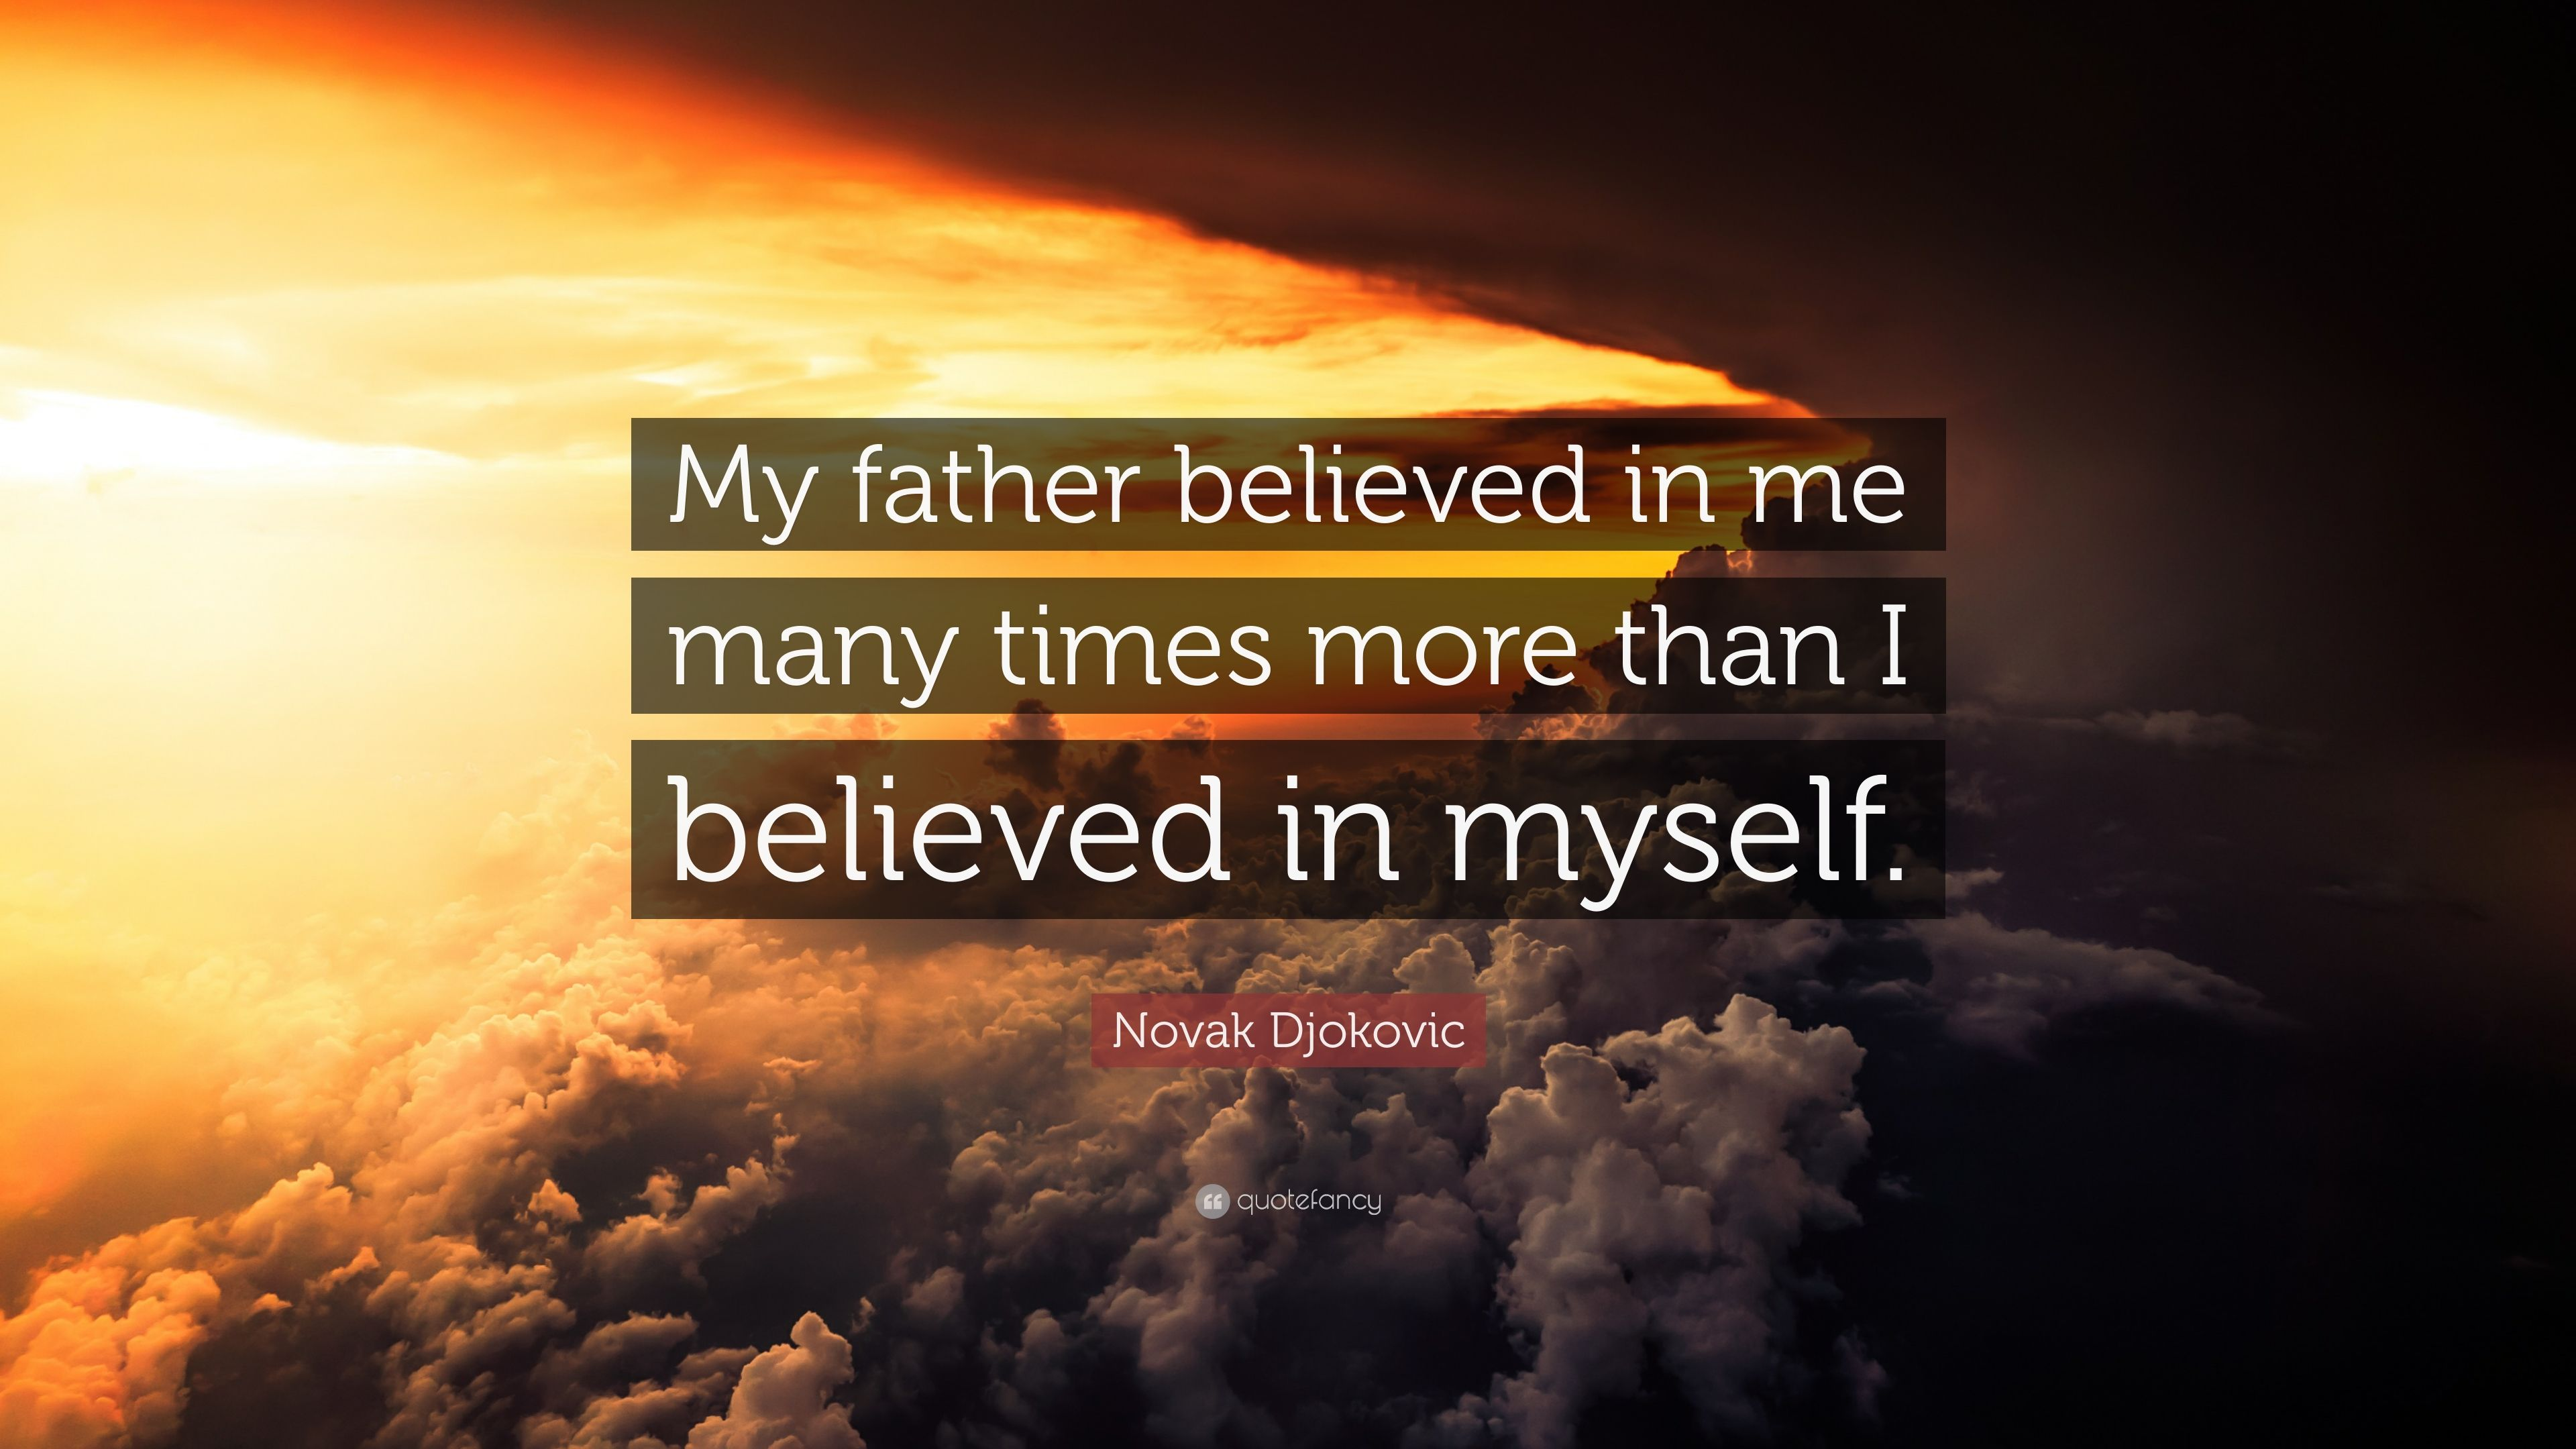 Novak Djokovic Quote My Father Believed In Me Many Times More Than I Believed In Myself 7 Wallpapers Quotefancy